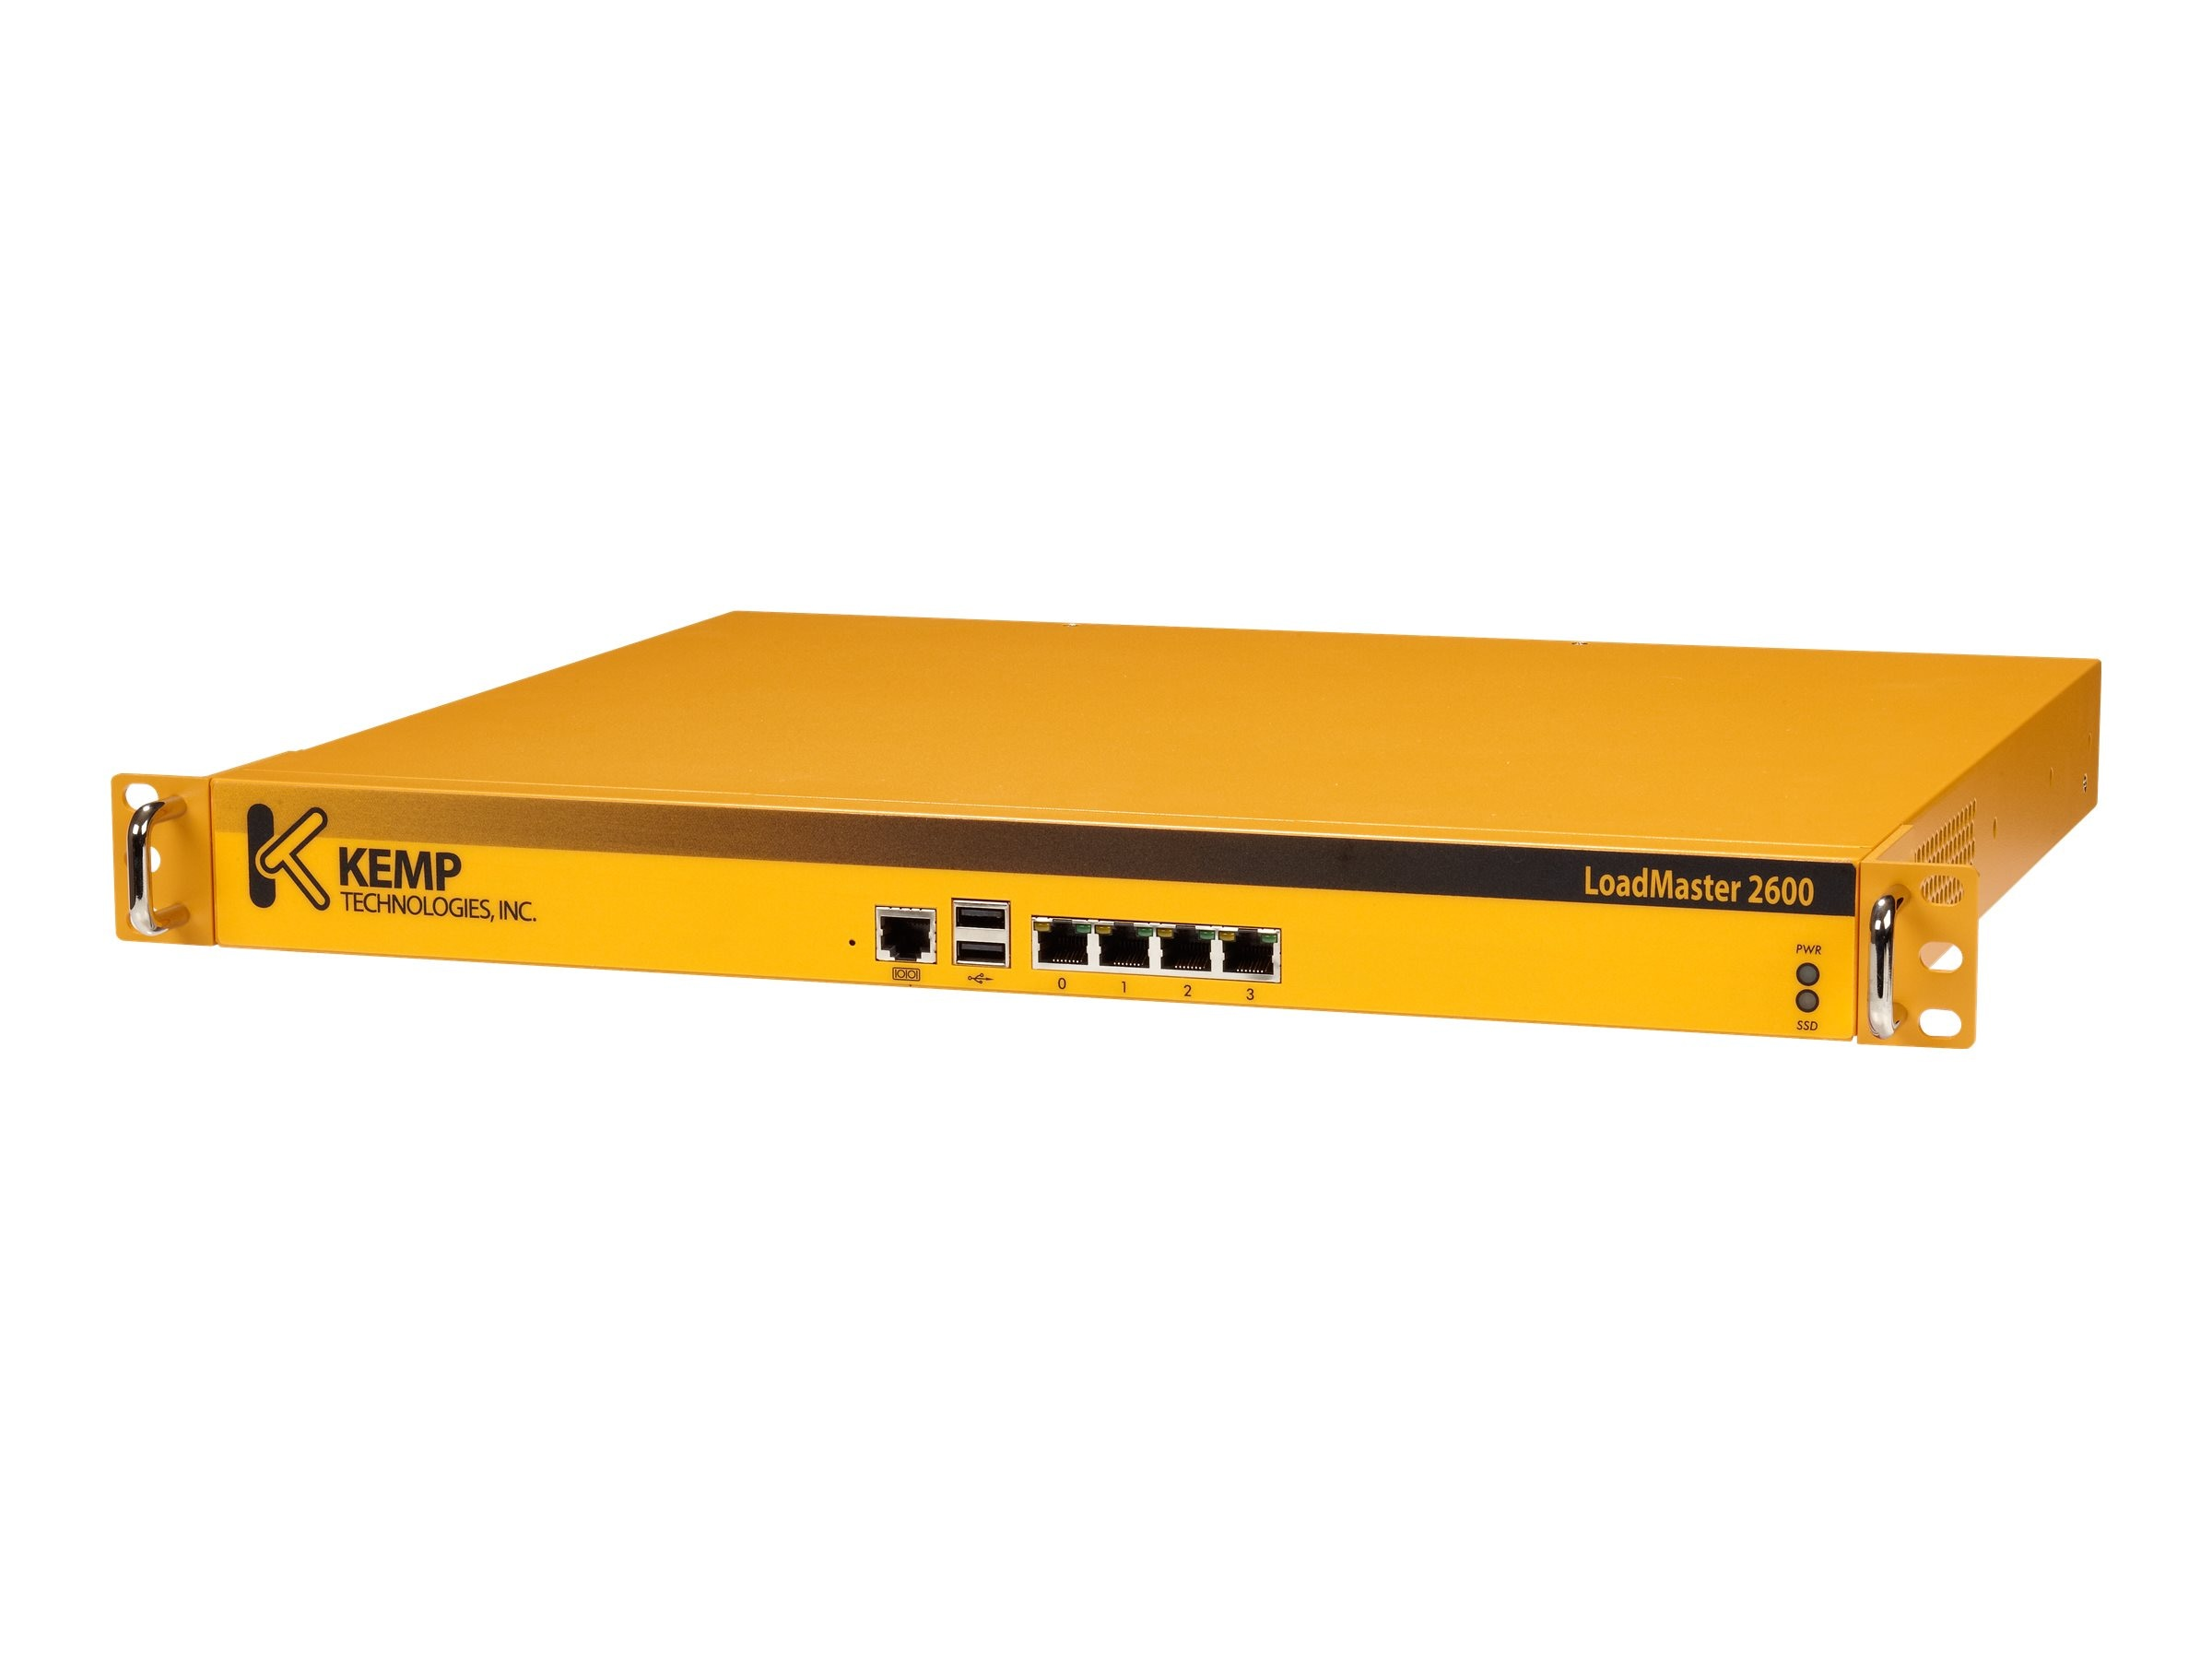 KEMP Loadmaster Load Balancer LM2600 Unit 3Yr Premium Support 24X7  Trade In, LM3-2600-P-TIP, 18103374, Load Balancers